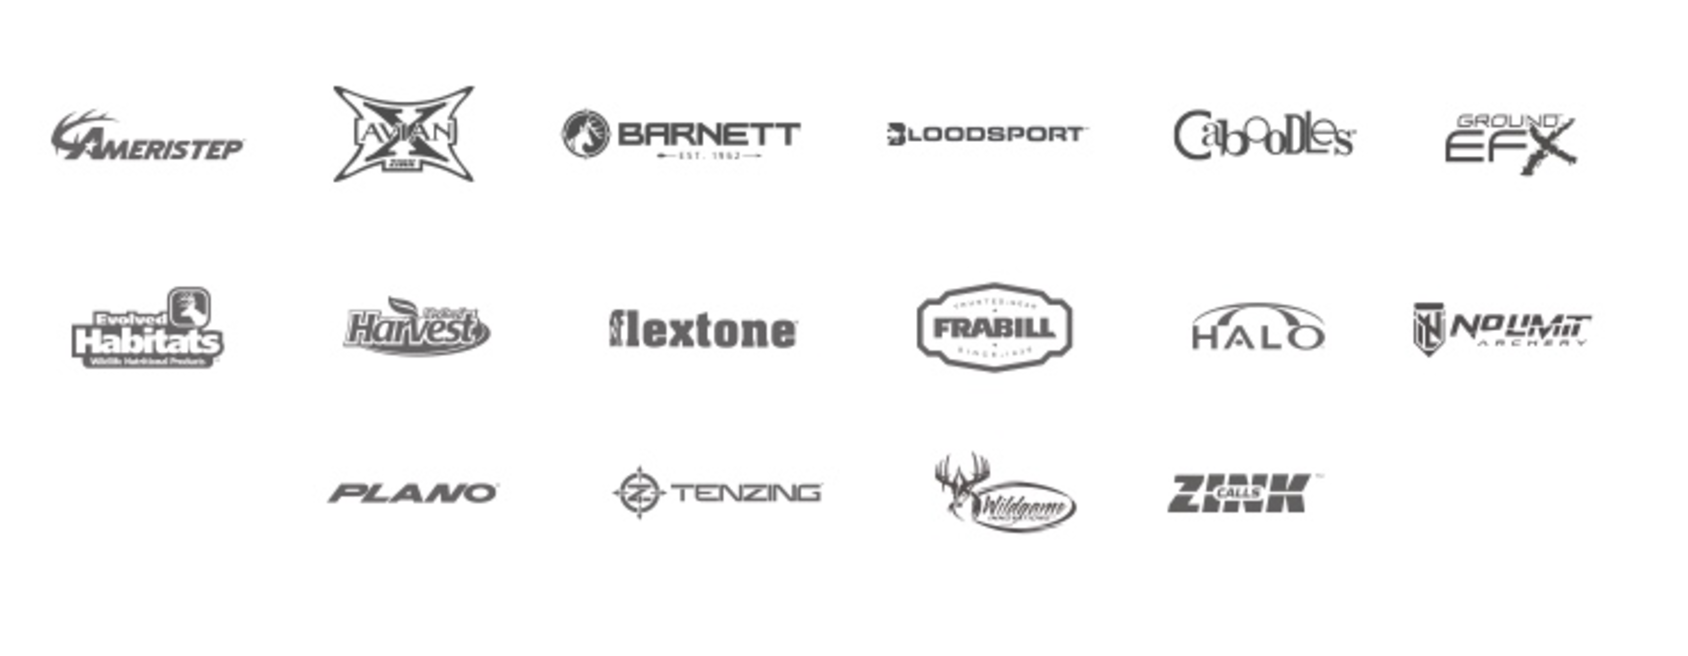 Plano Synergy Brands